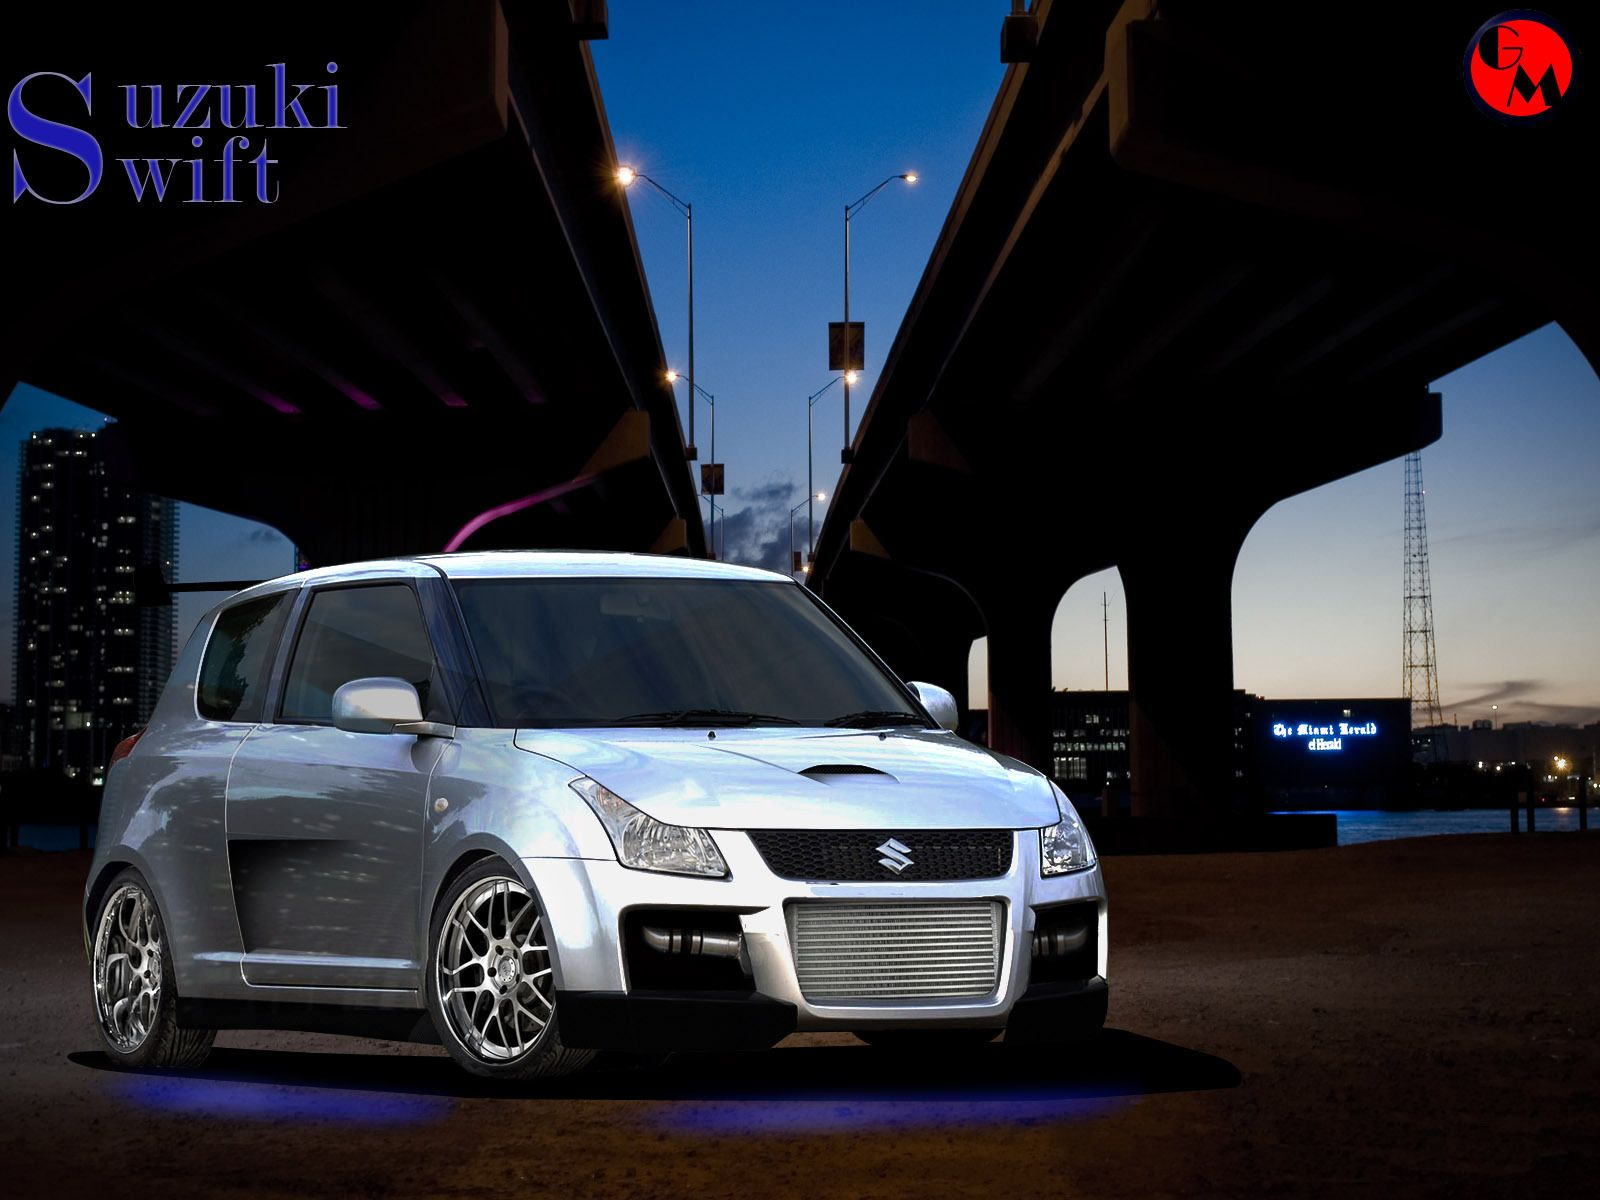 Suzuki swift sport 2013 pictures to pin on pinterest - Reliable Car Suzuki Swift Wallpapers And Images Wallpapers